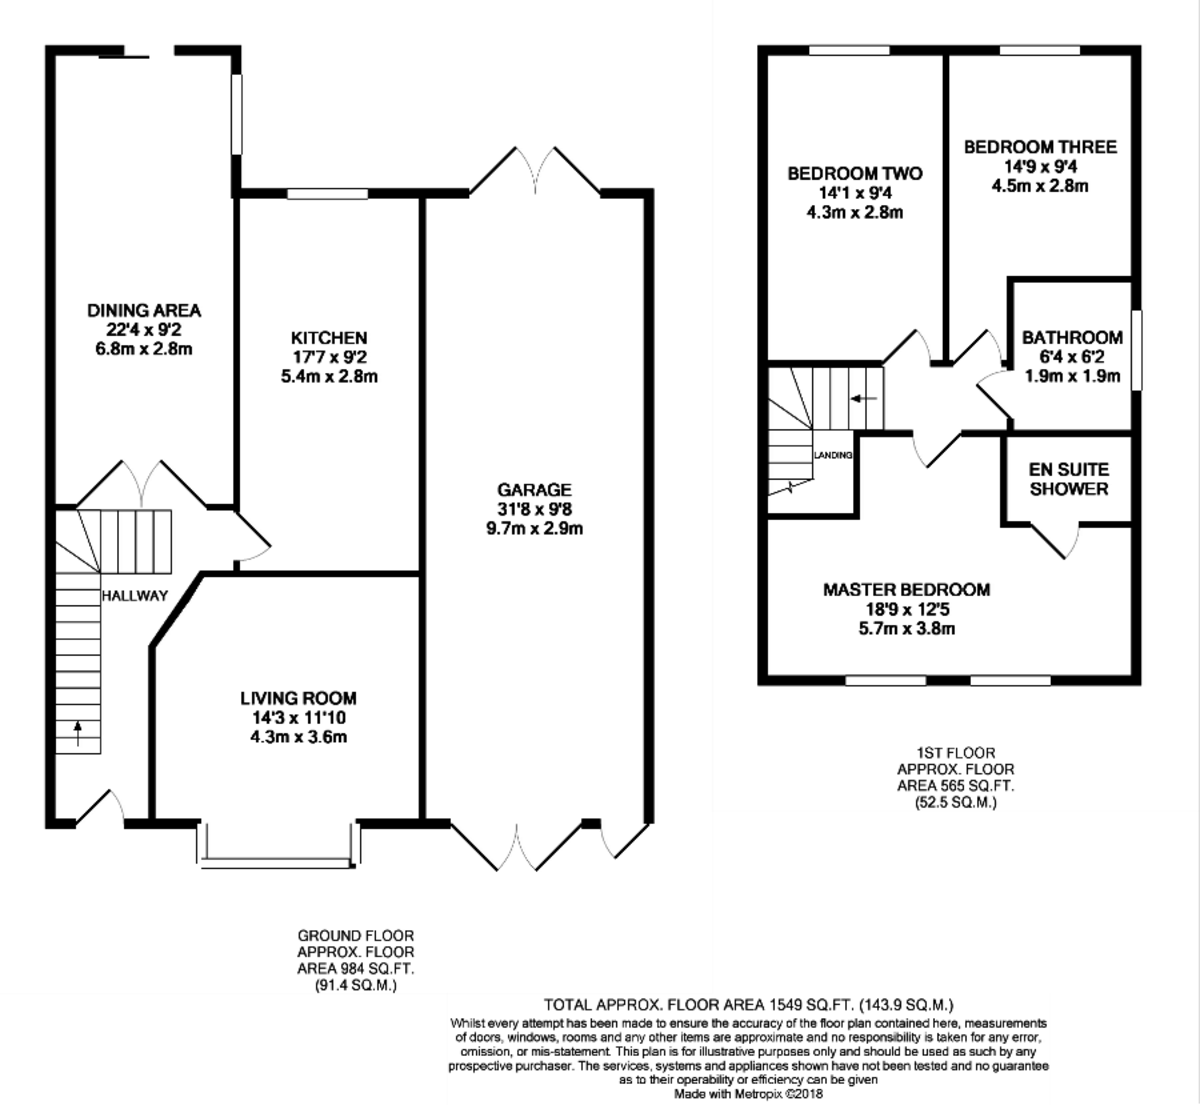 Norton Lane, Earlswood, Solihull floorplan 1 of 1